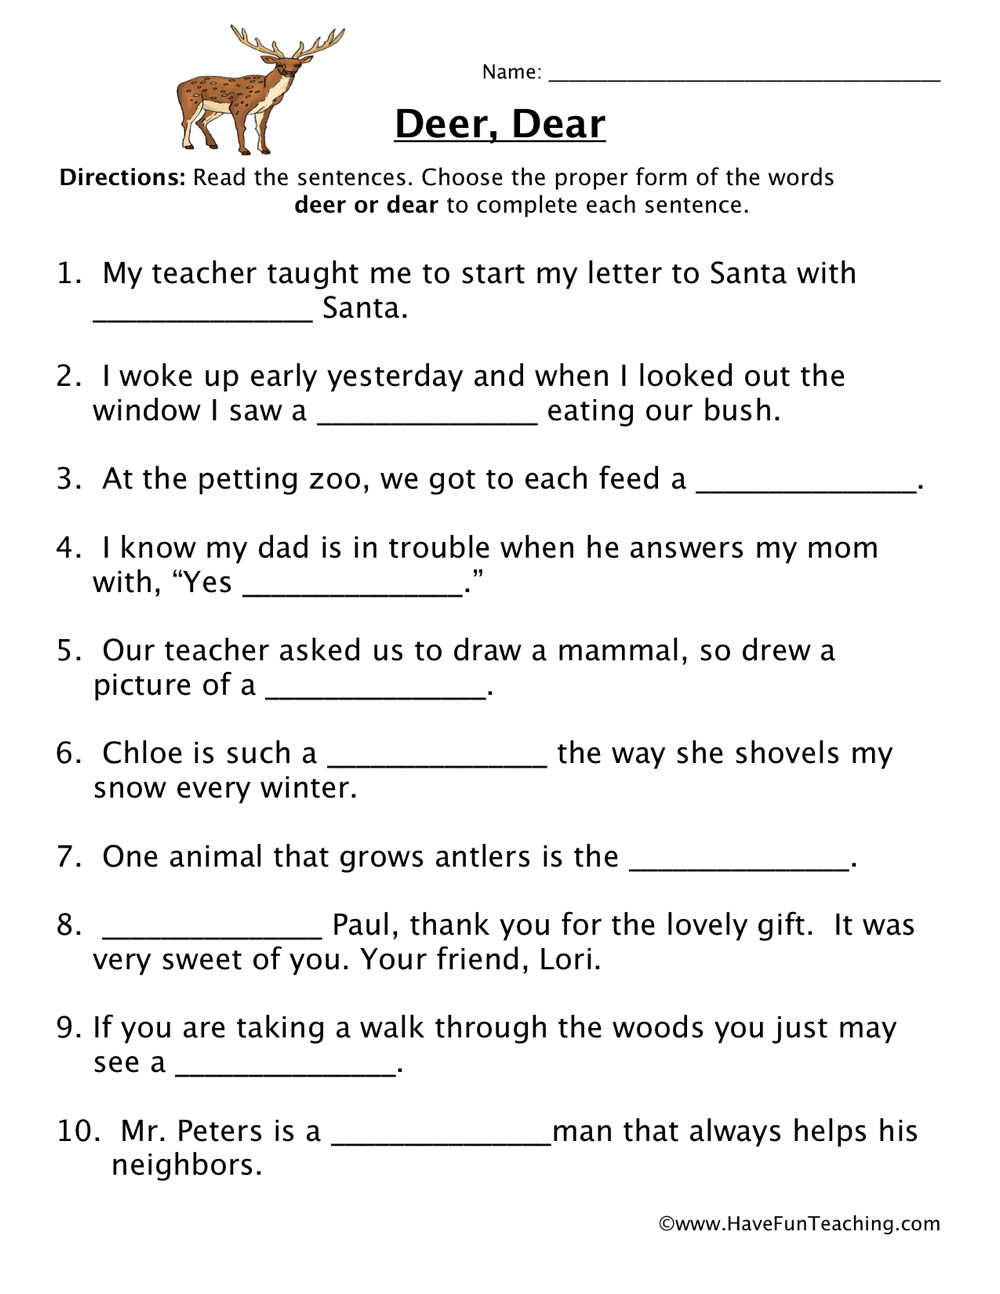 Homophones Worksheet High School Homophones Worksheet islcollective